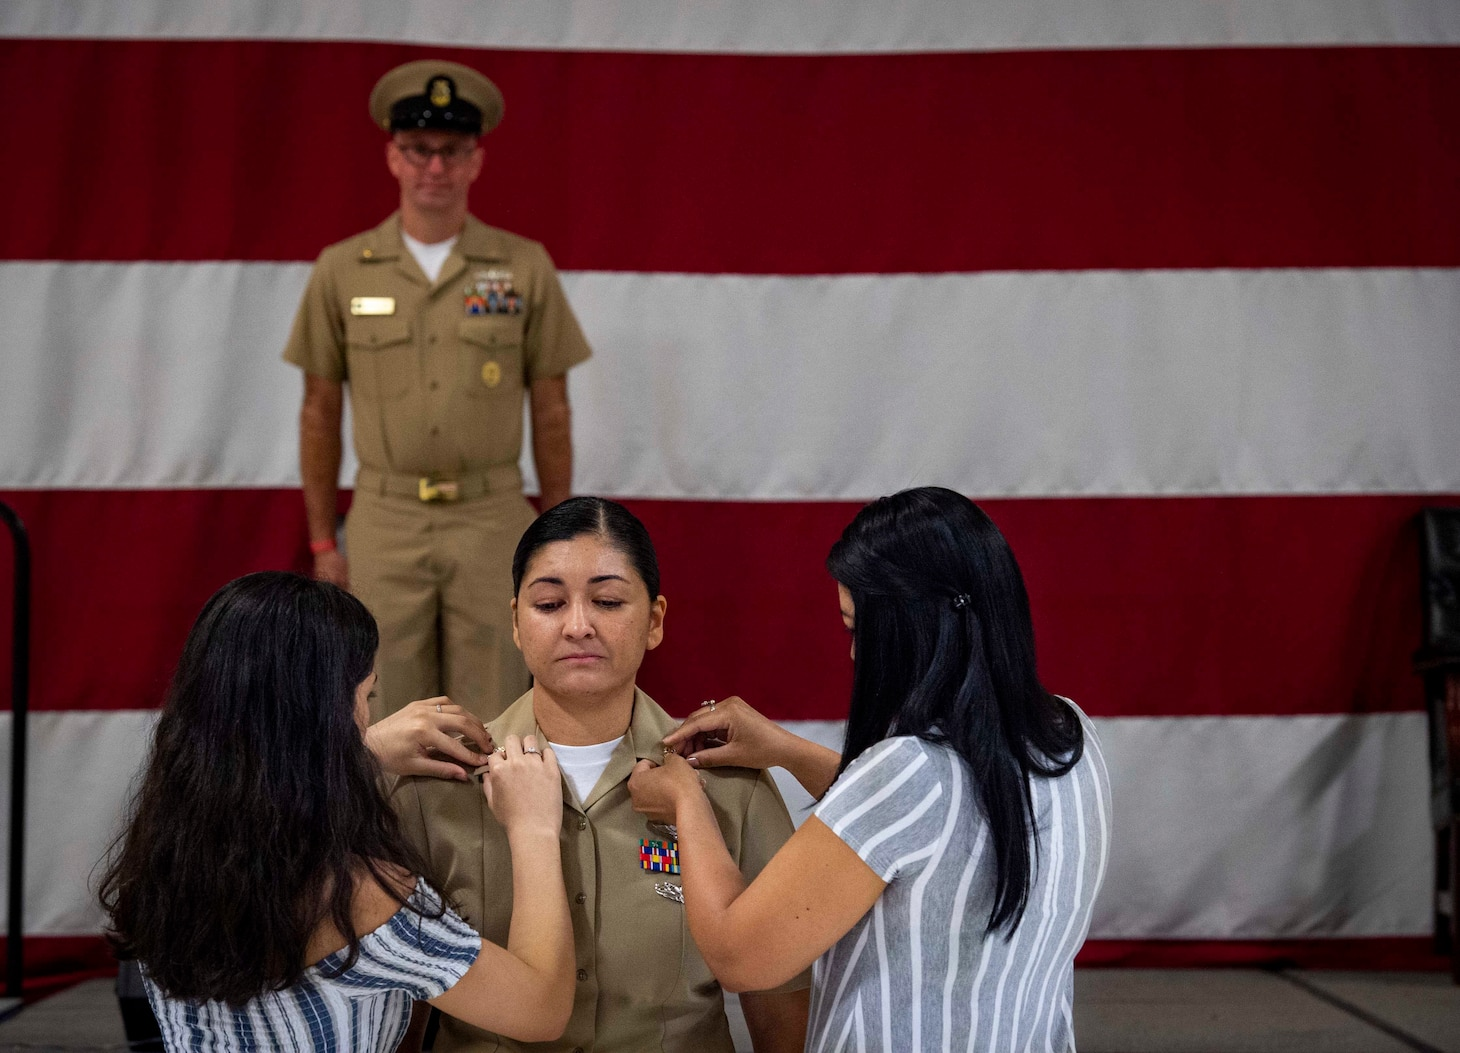 U.S. Fleet Forces Command (USFFC) 2019 Sea Sailor of the Year (SOY) Chief Aviation Structural Mechanic Carolina Berrio, of Strike Fighter Squadron (VFA) 81 and an Armenia, Columbia native, center, is pinned by her daughter and sister during a chief pinning ceremony at the Center for Naval Aviation Technical Training hangar onboard Naval Air Station Oceana, June 2, 2020.